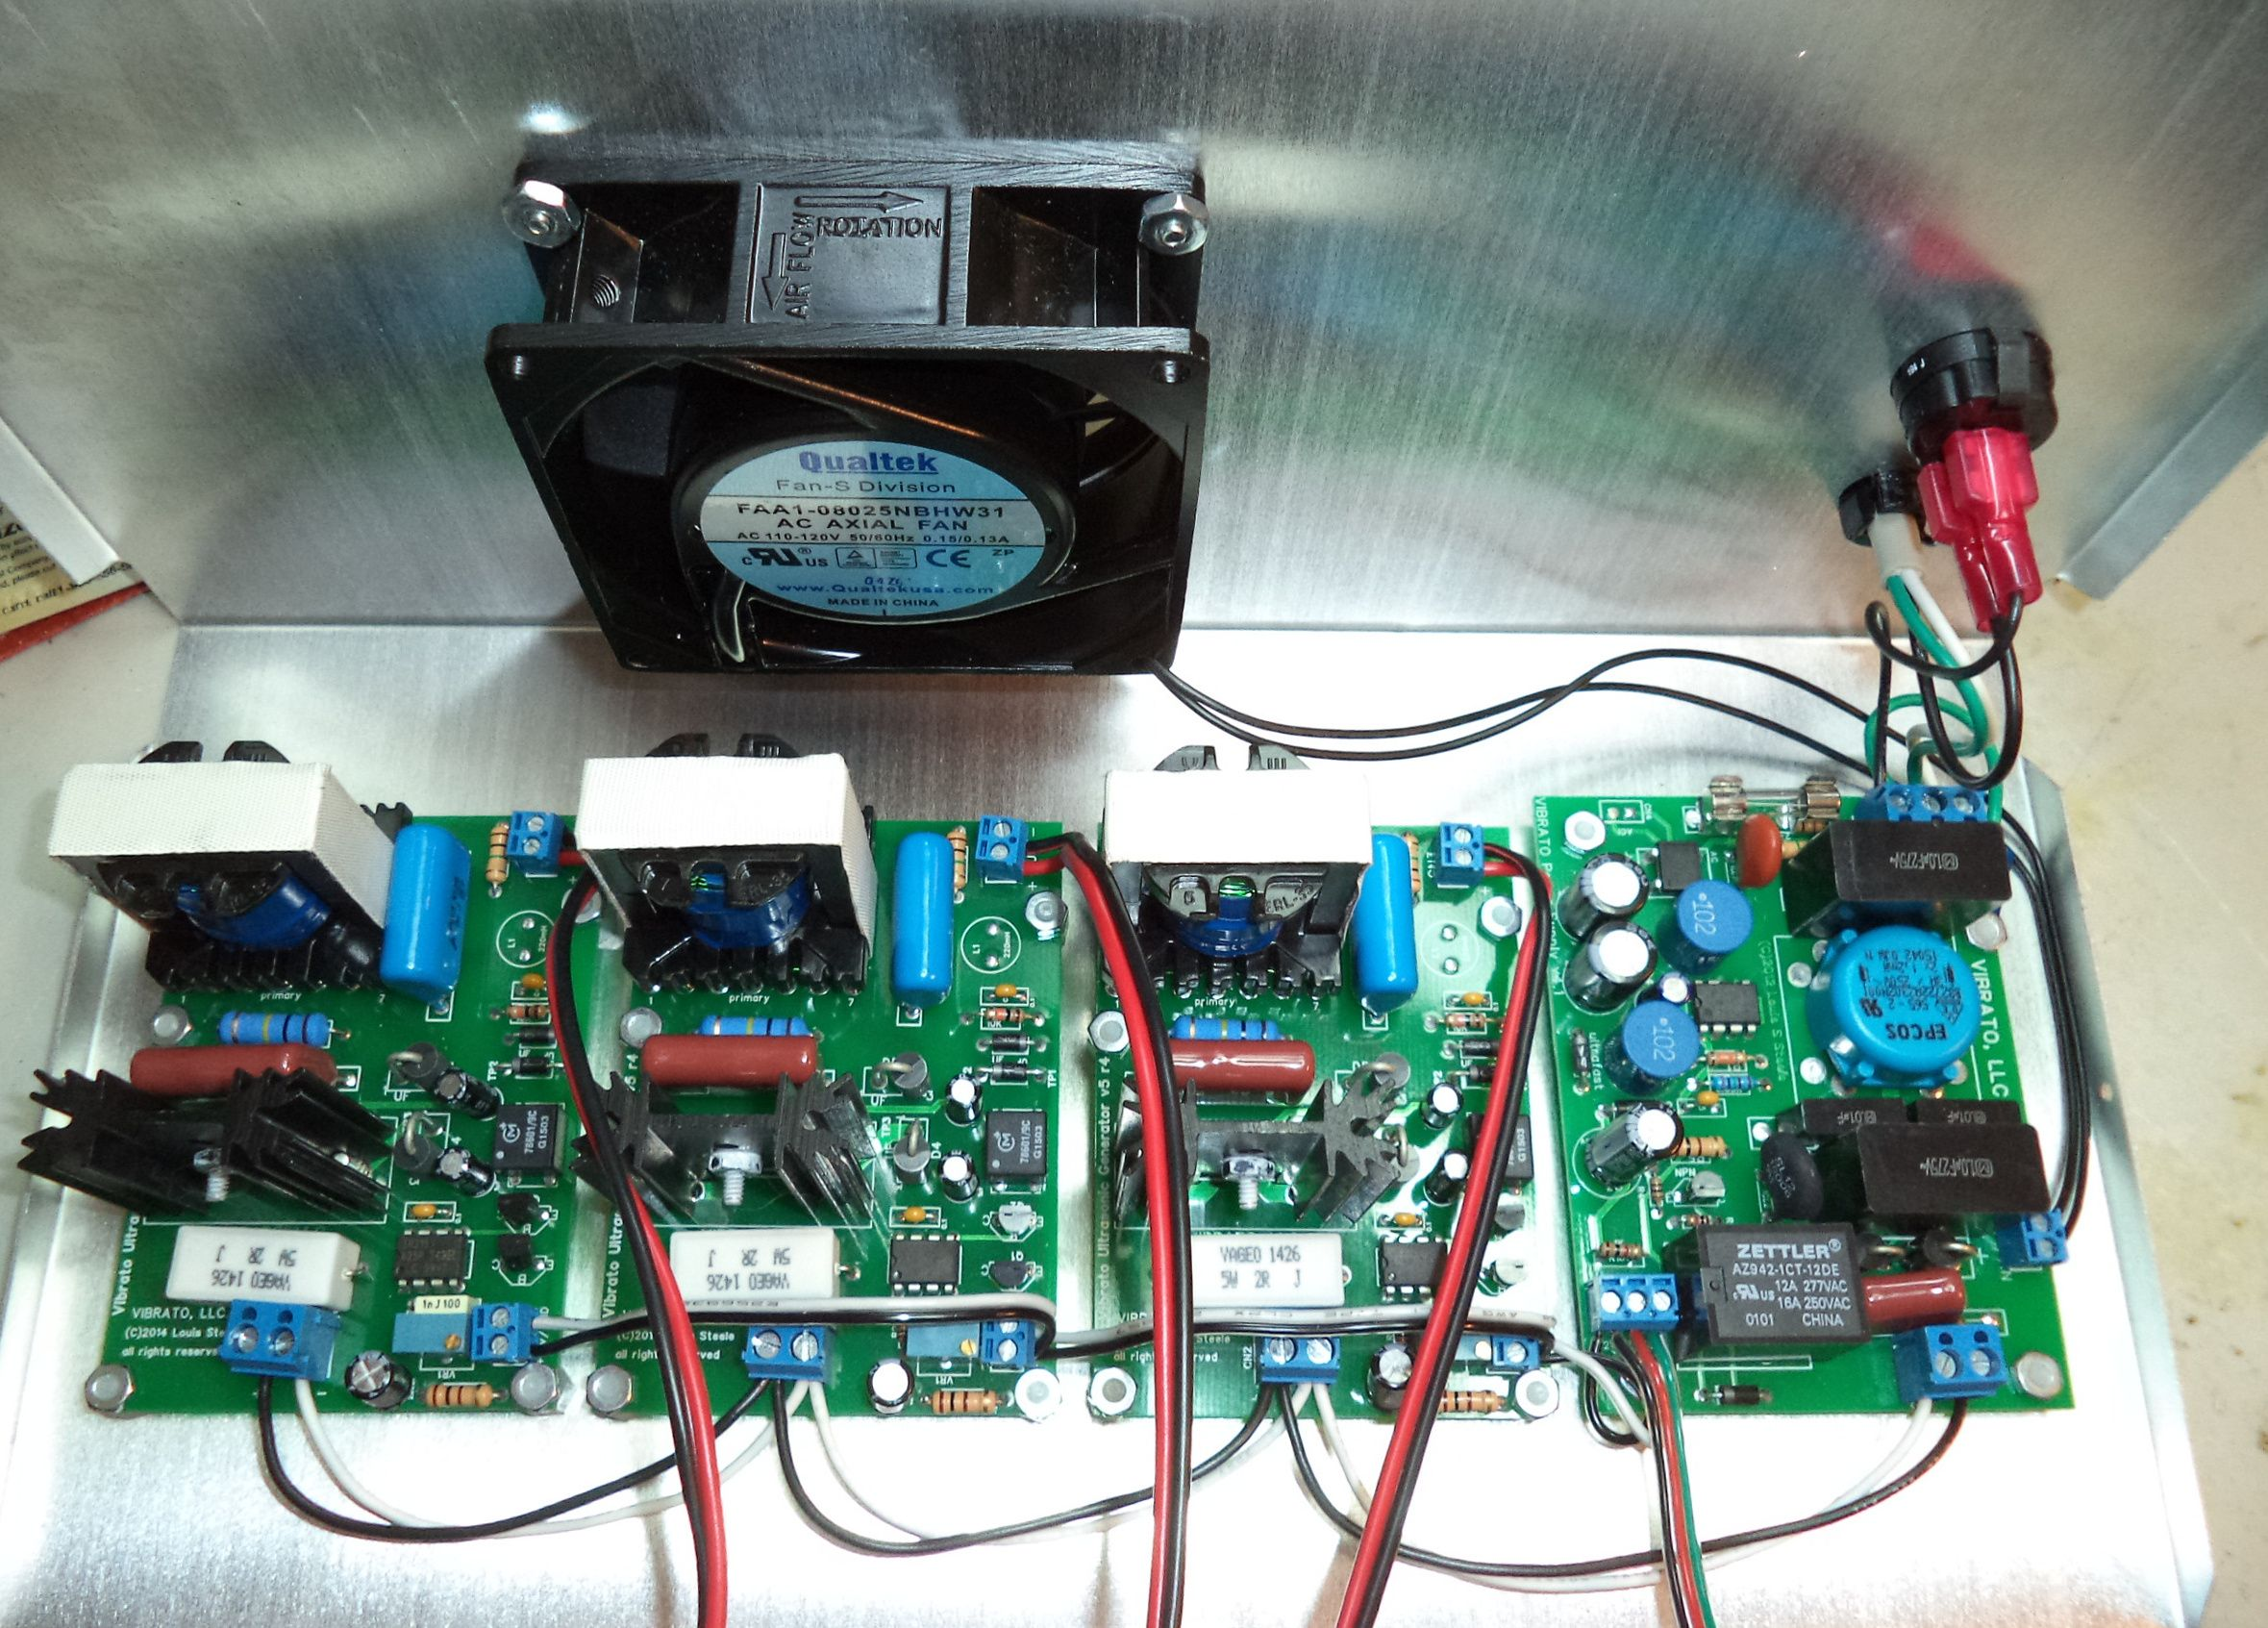 Installation And Wiring Of Vibrato Circuit Boards In The 80khz Board Module Pcb On Off Dishwasher Printed Ultrasonic Cleaner